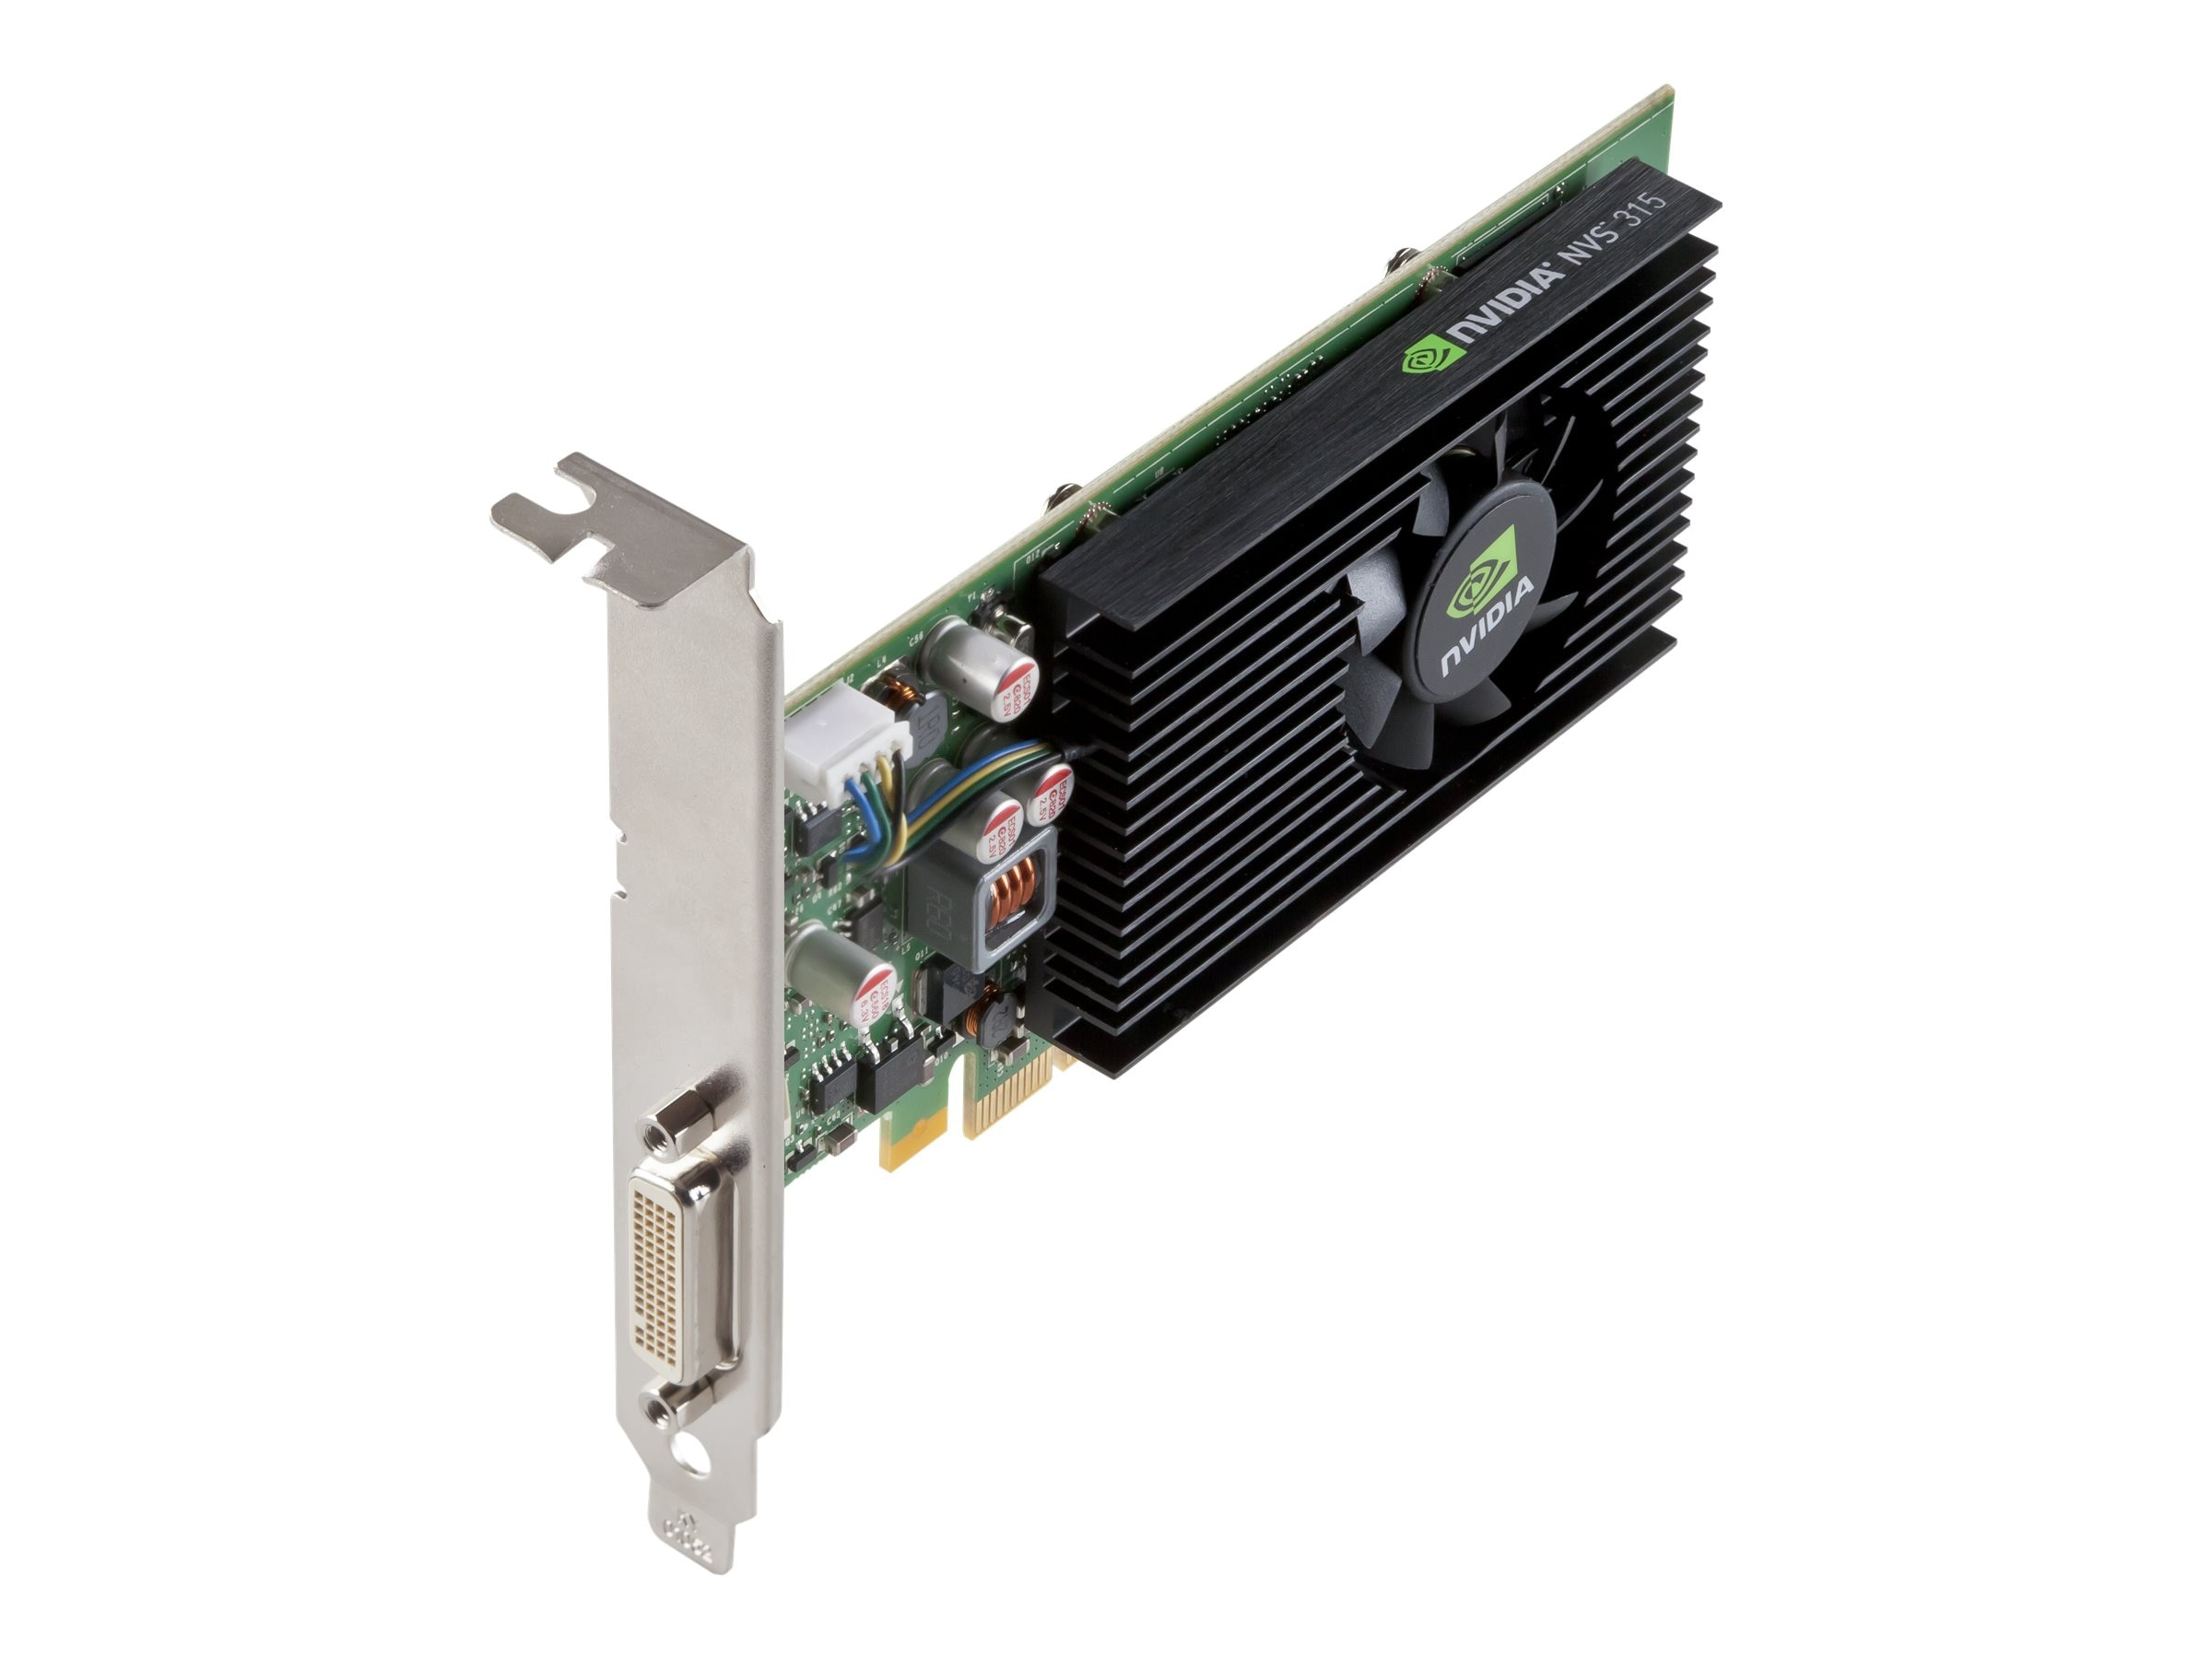 PNY NVIDIA NVS 315 LP PCIe x16 Graphics Card, DMS 59, 1GB, VCNVS315DVI-PB, 15904547, Graphics/Video Accelerators